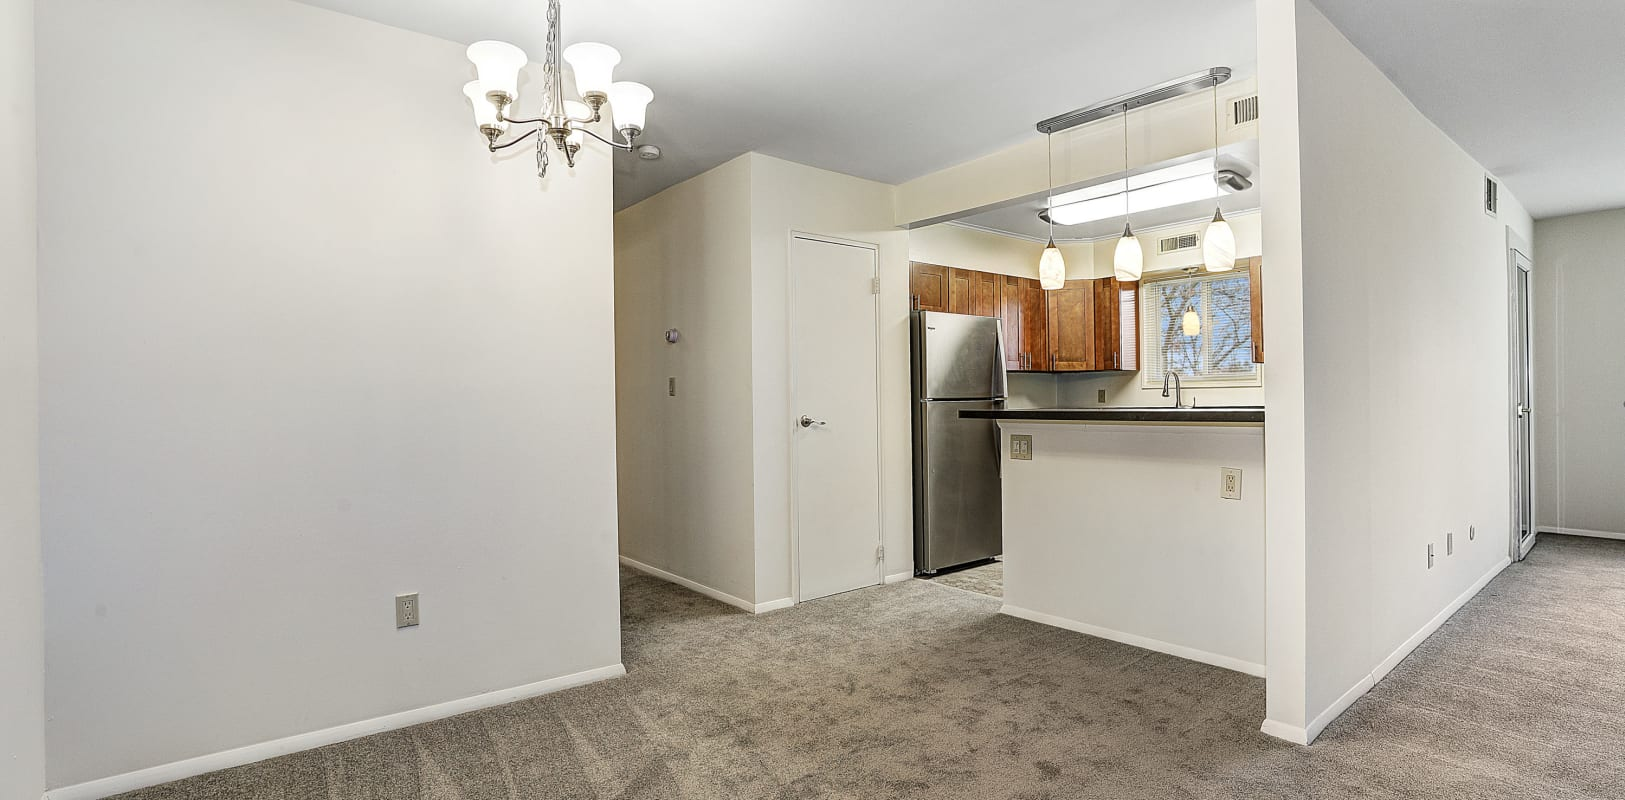 Dining area and kitchen breakfast bar at Penn Crest Apartments in Allentown, Pennsylvania